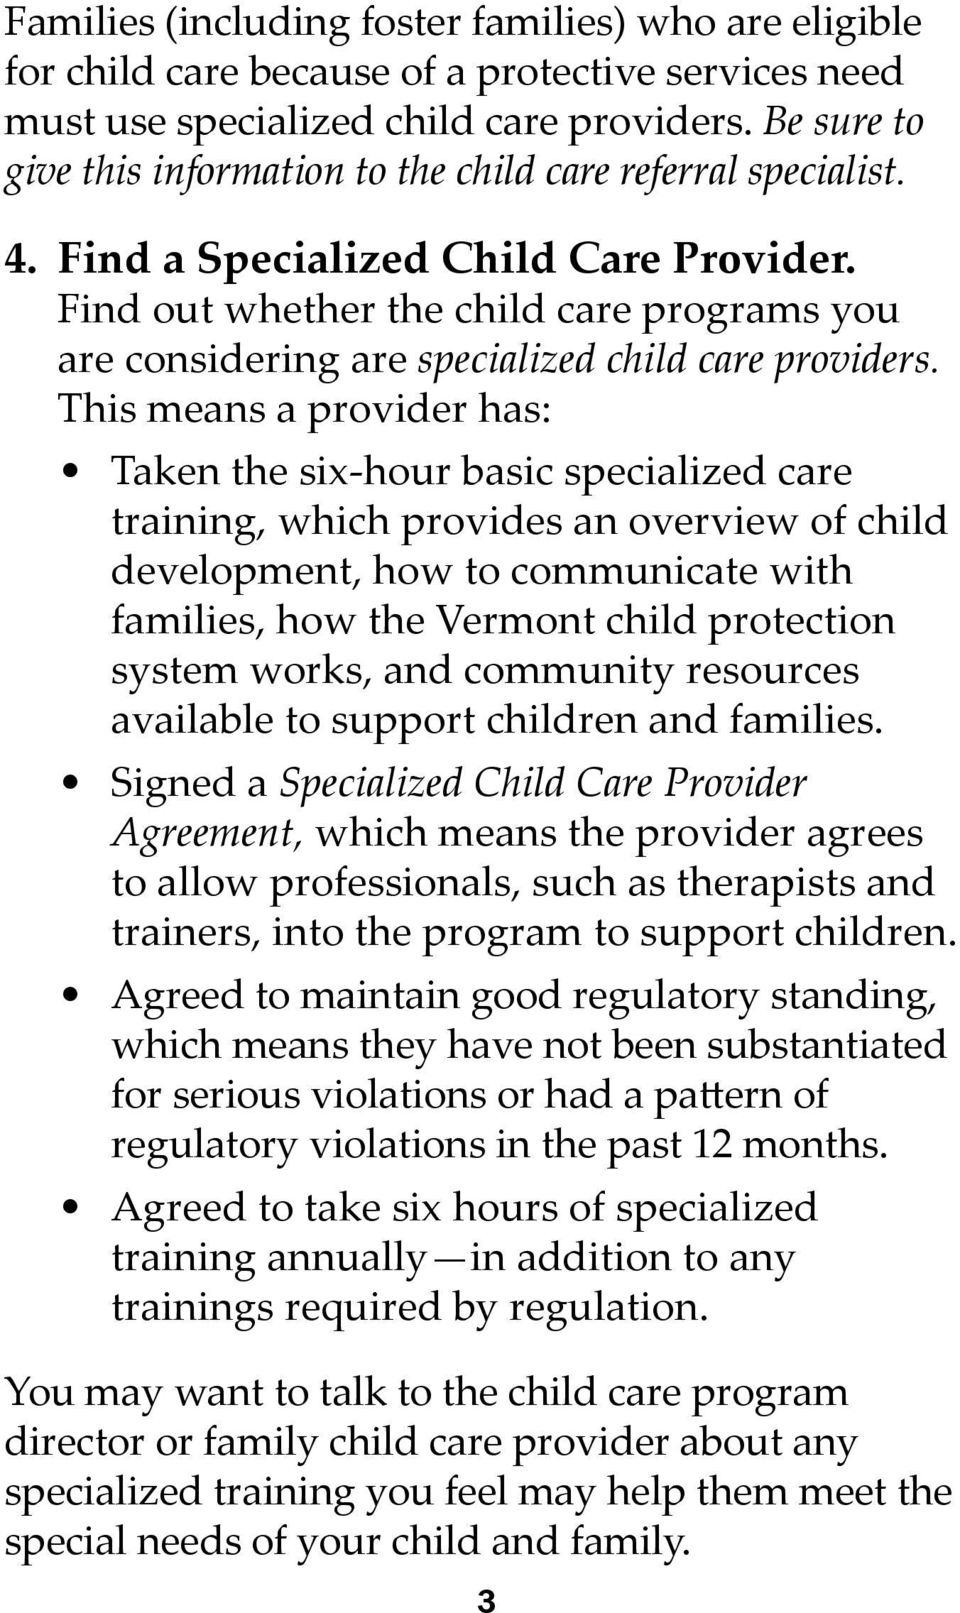 Find out whether the child care programs you are considering are specialized child care providers.